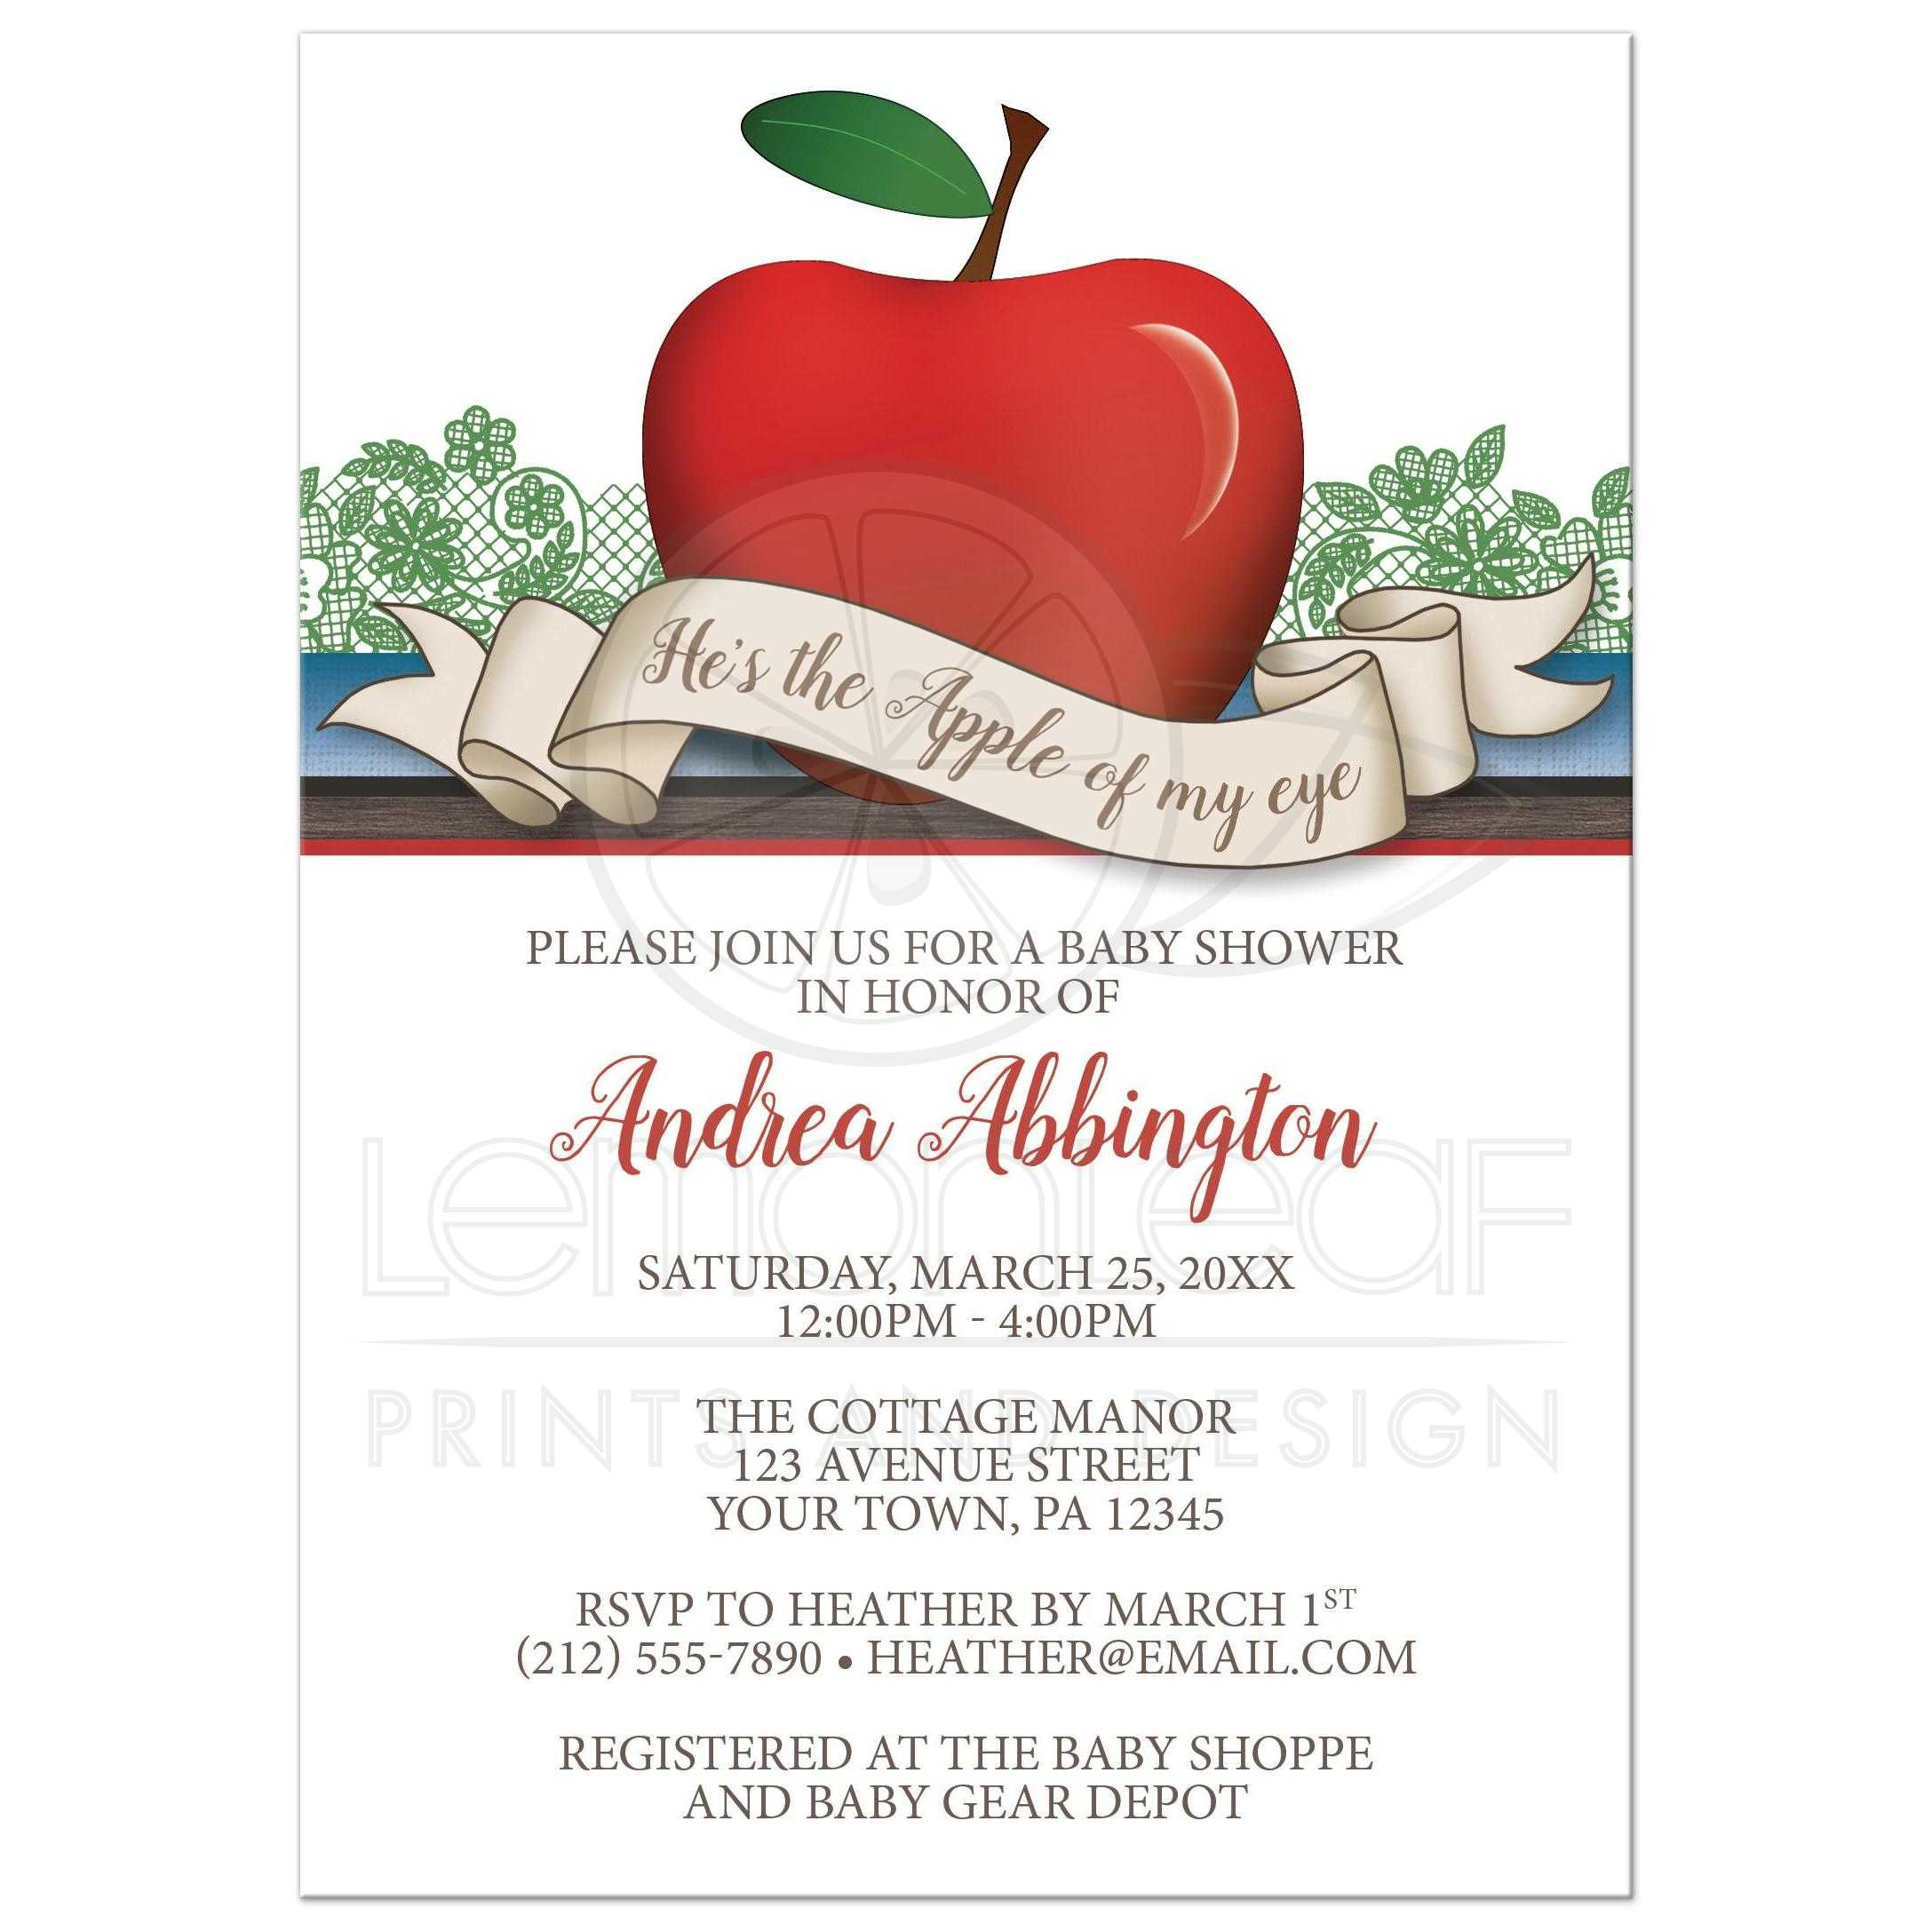 Baby Shower Invitations - Boy Red \'Apple of My Eye\'